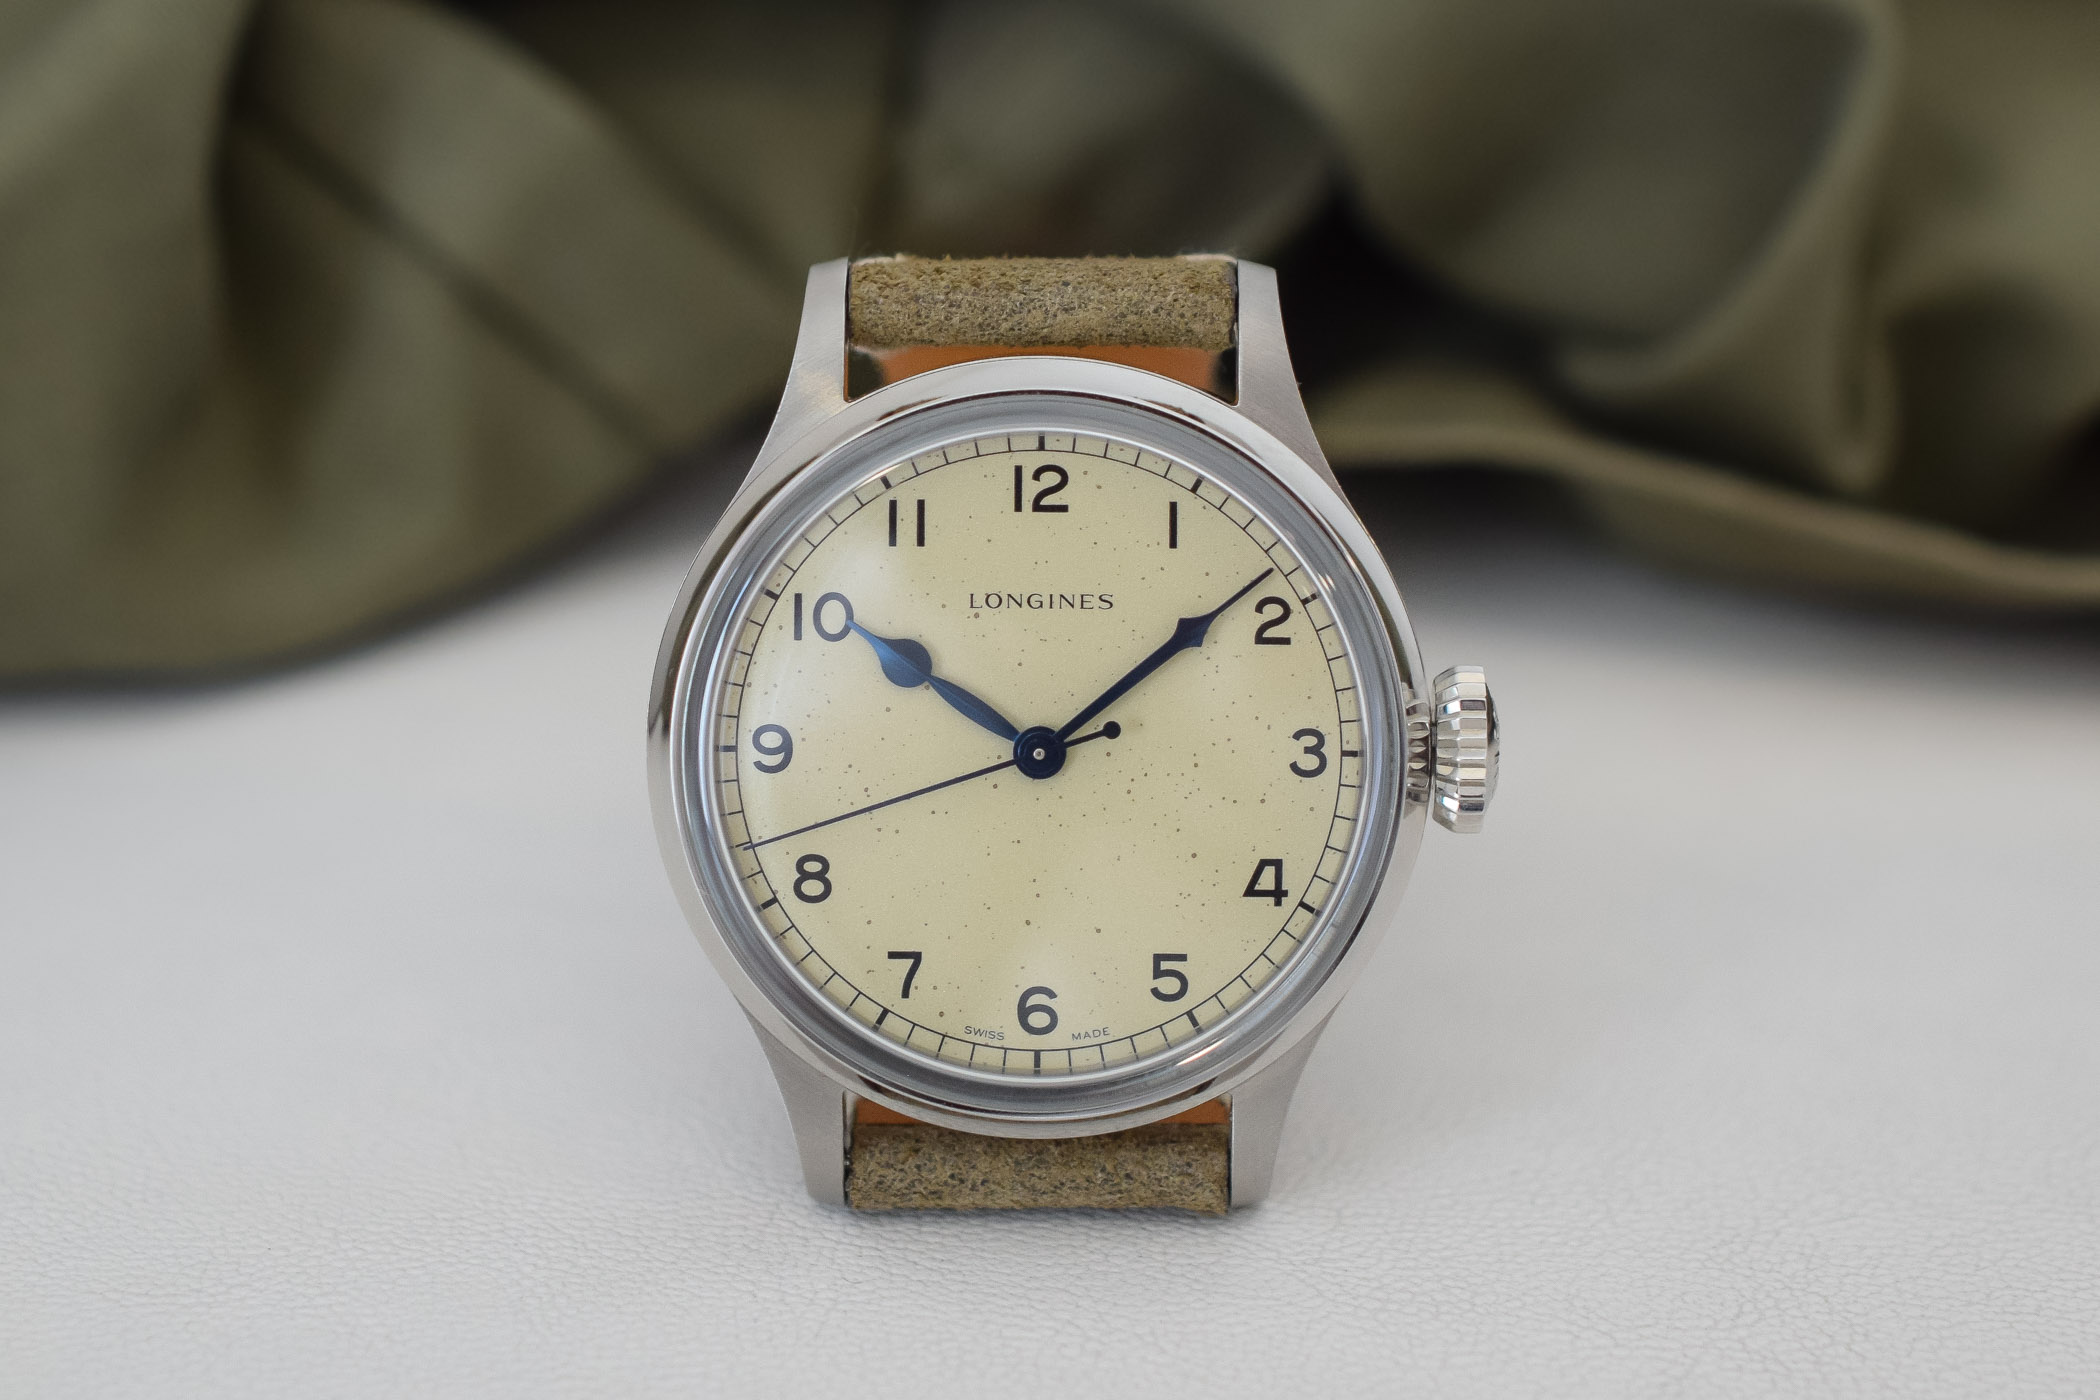 f54083d3f Review - Longines Heritage Military RAF 6B/159 Re-Edition (Specs ...